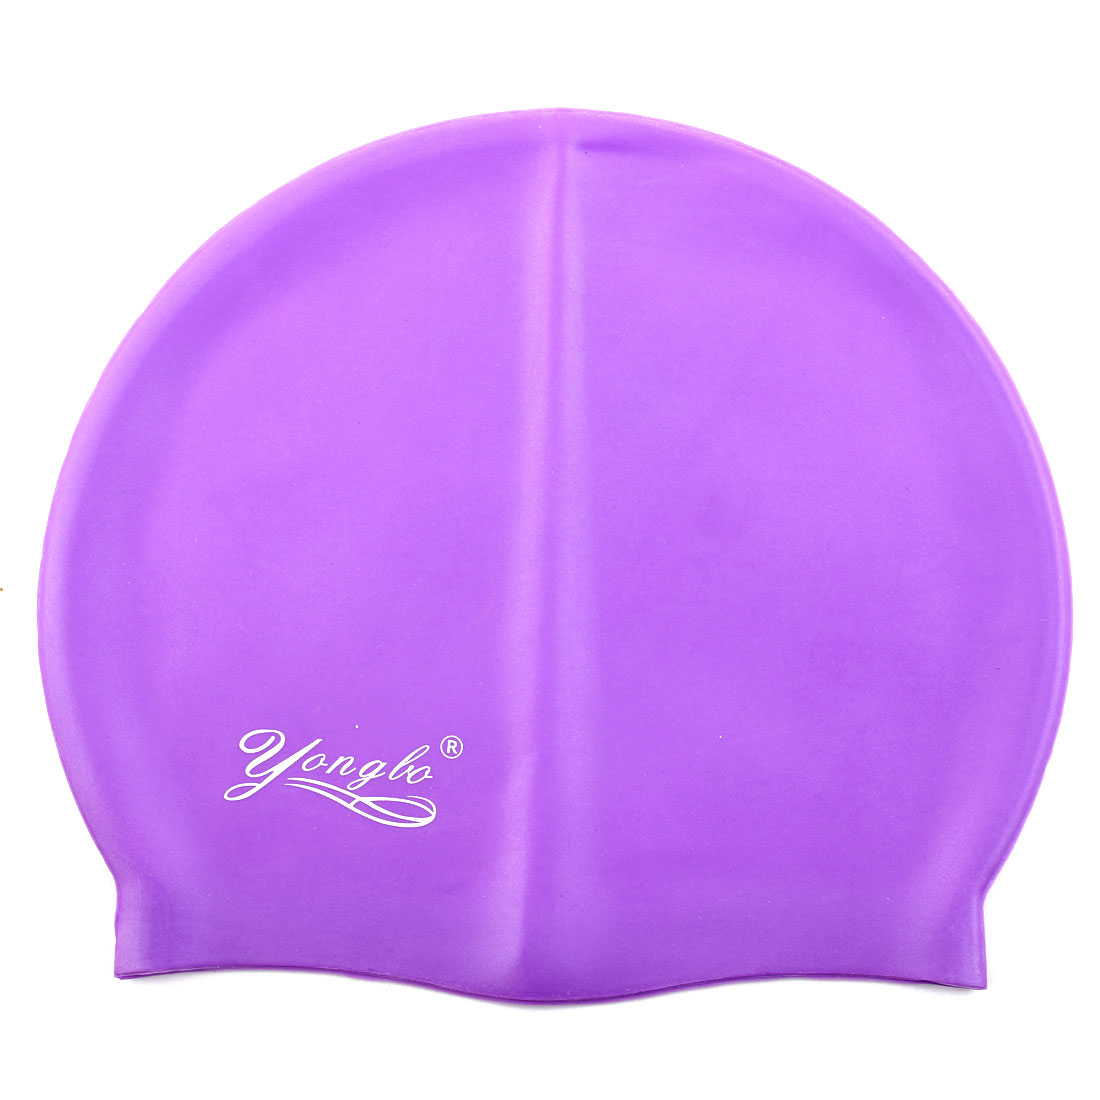 Unisex Silicone Dome Shaped Non-slip Stretchable Swimming Cap Portable Bathing Hat Purple